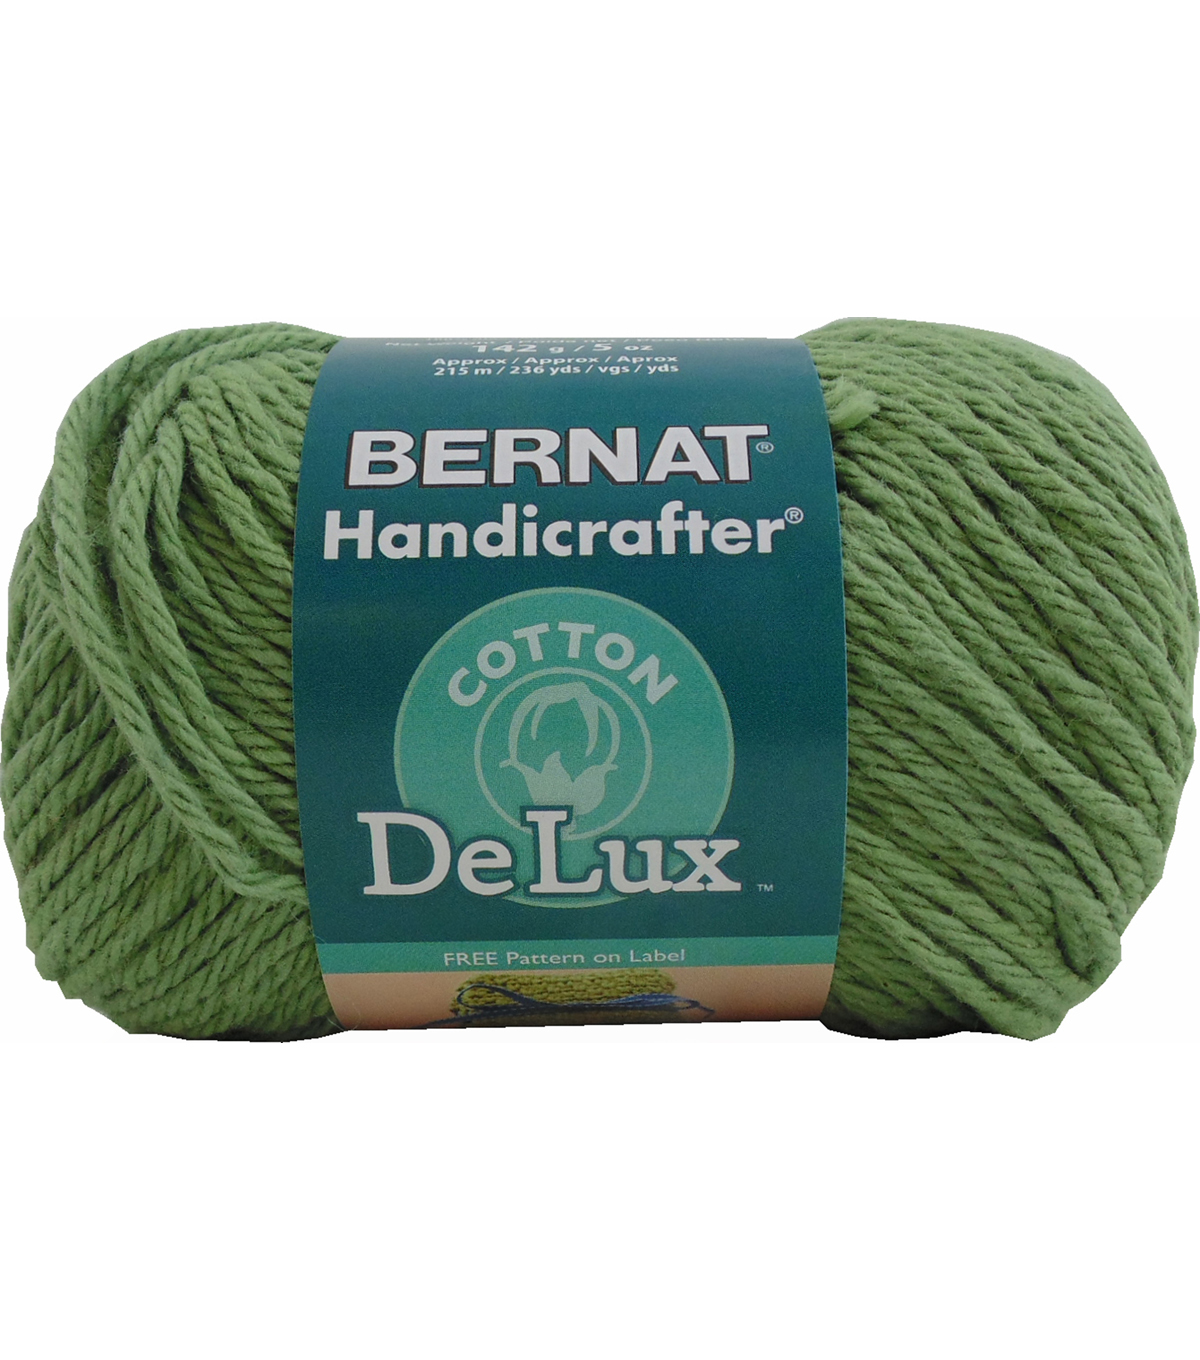 Bernat Handicrafter DeLux Cotton Yarn, Olive